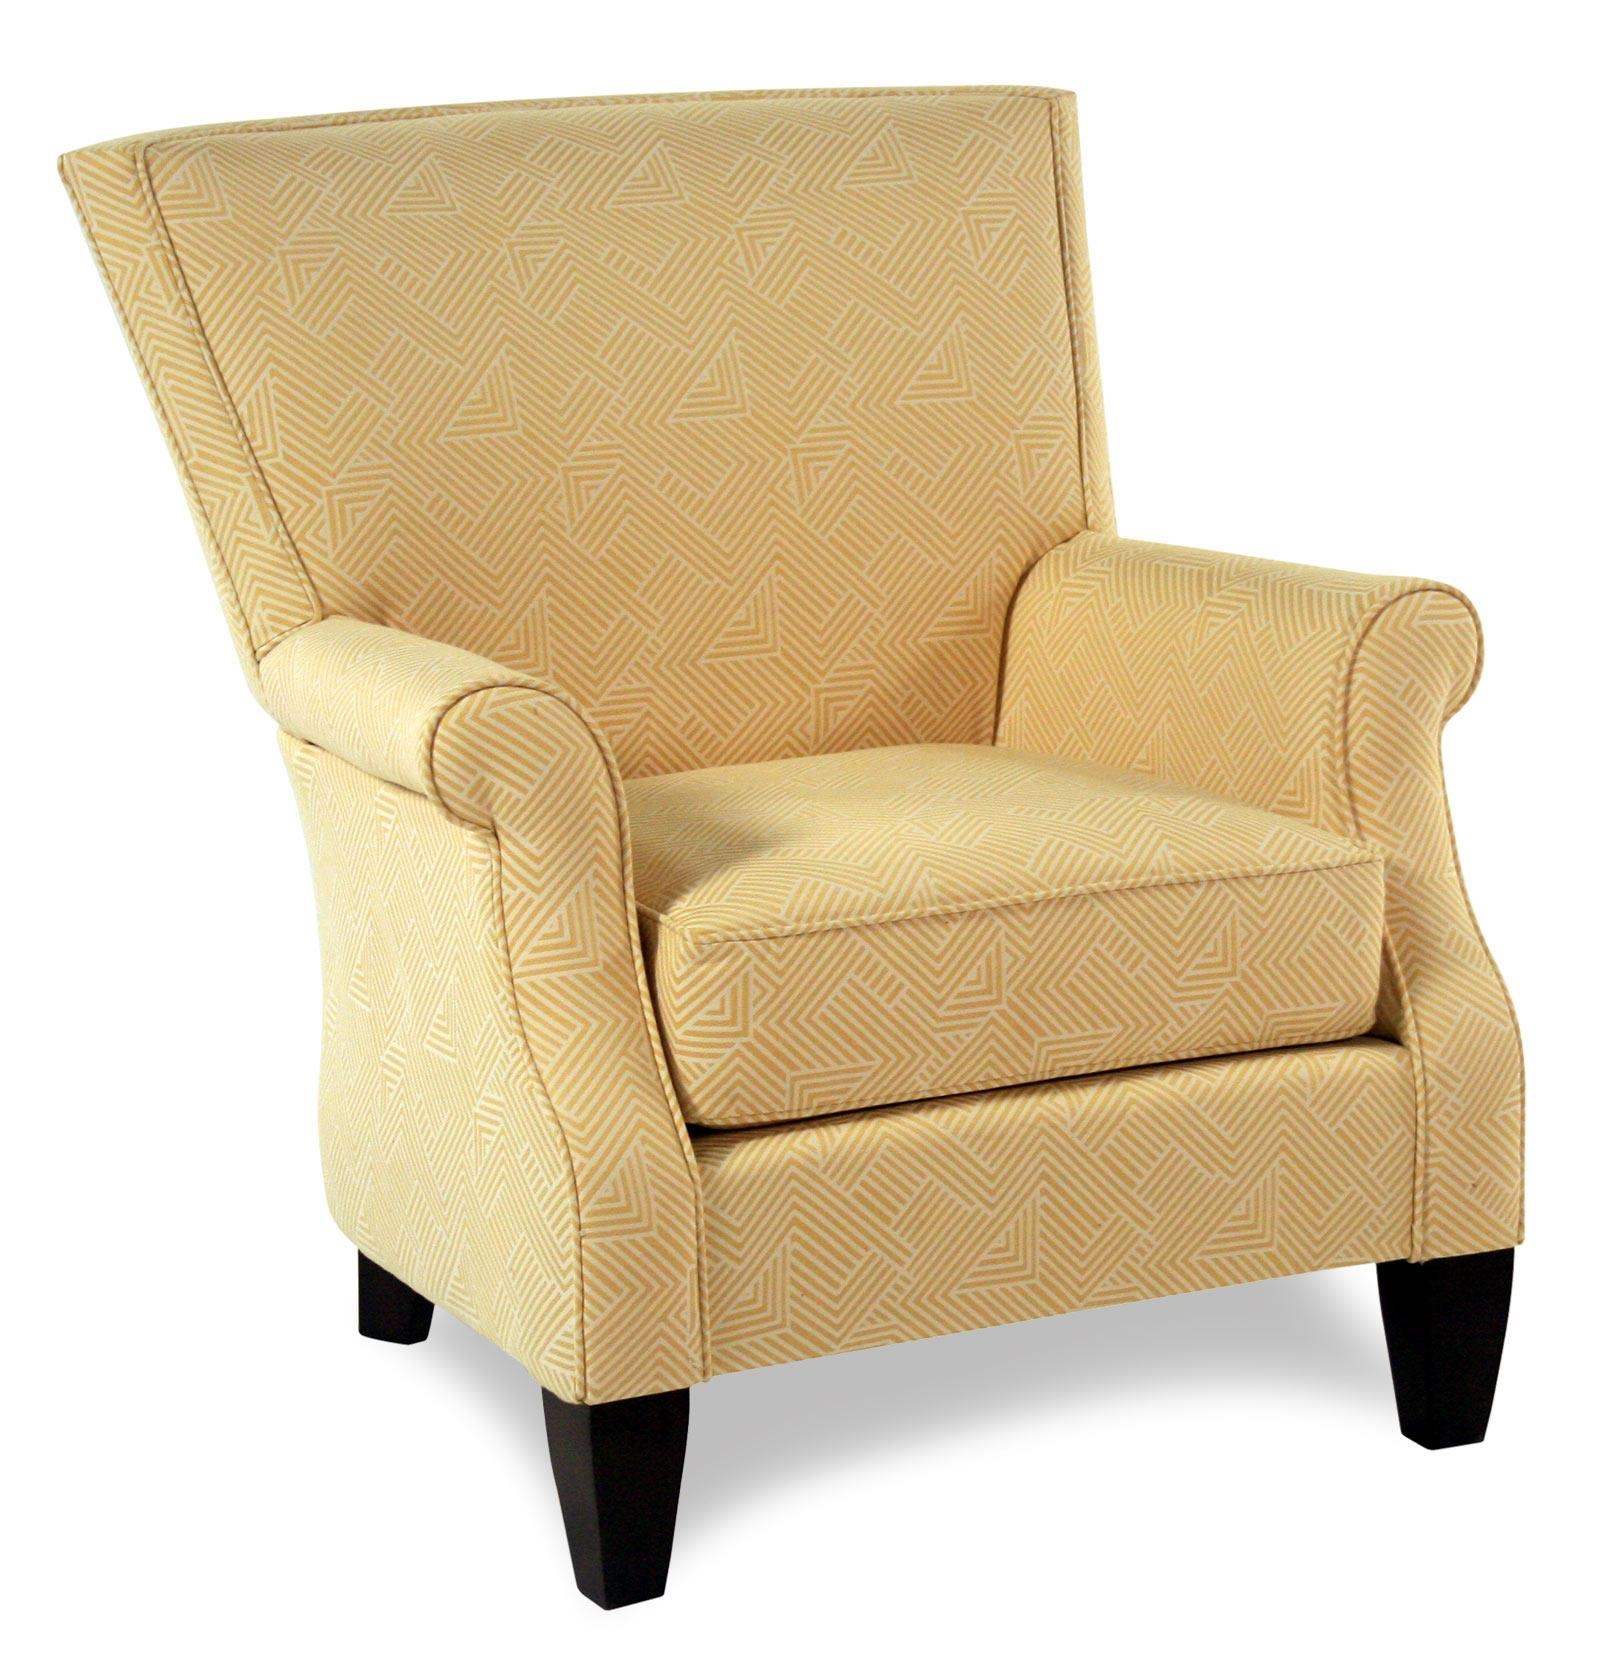 Cozy Life Accent Chairs Contemporary Upholstered Chair - Item Number: 061310-MAZEFOLD02